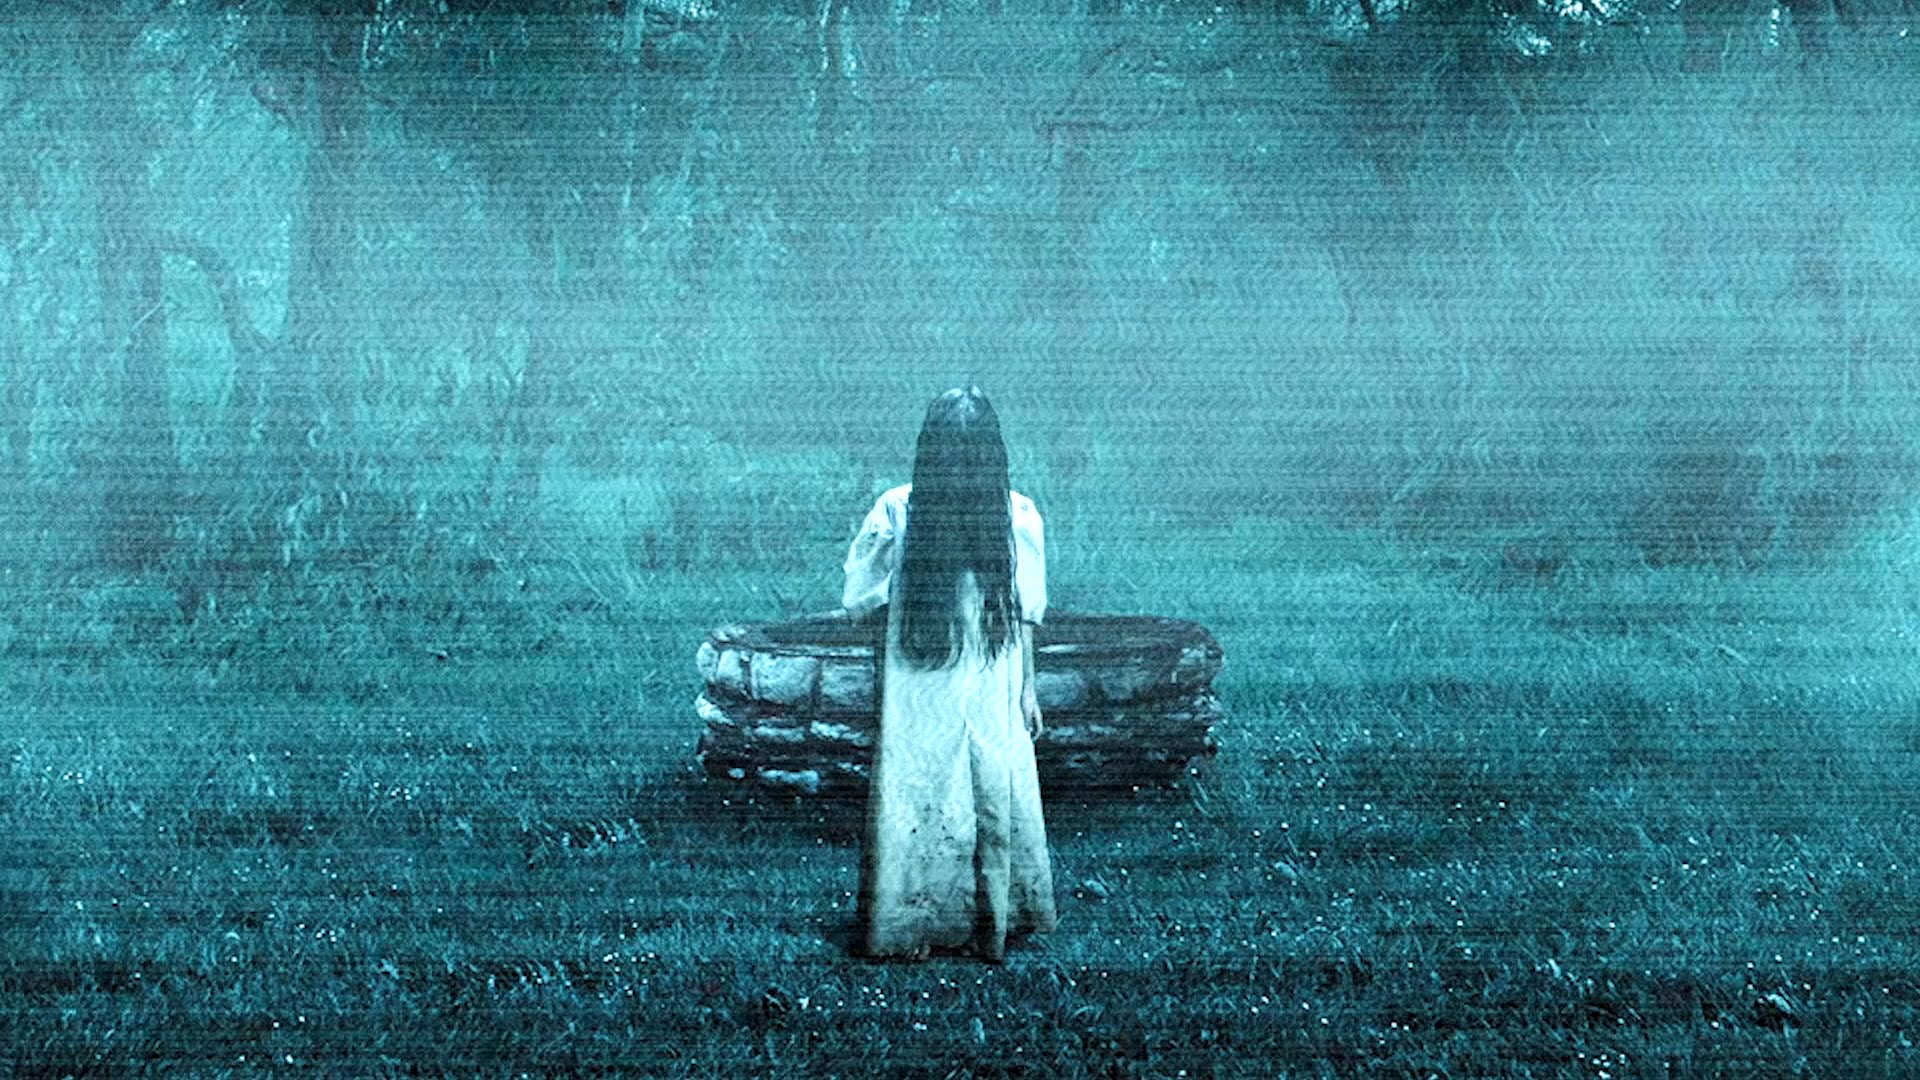 Explore The Ring story so far with a recap of the franchise.